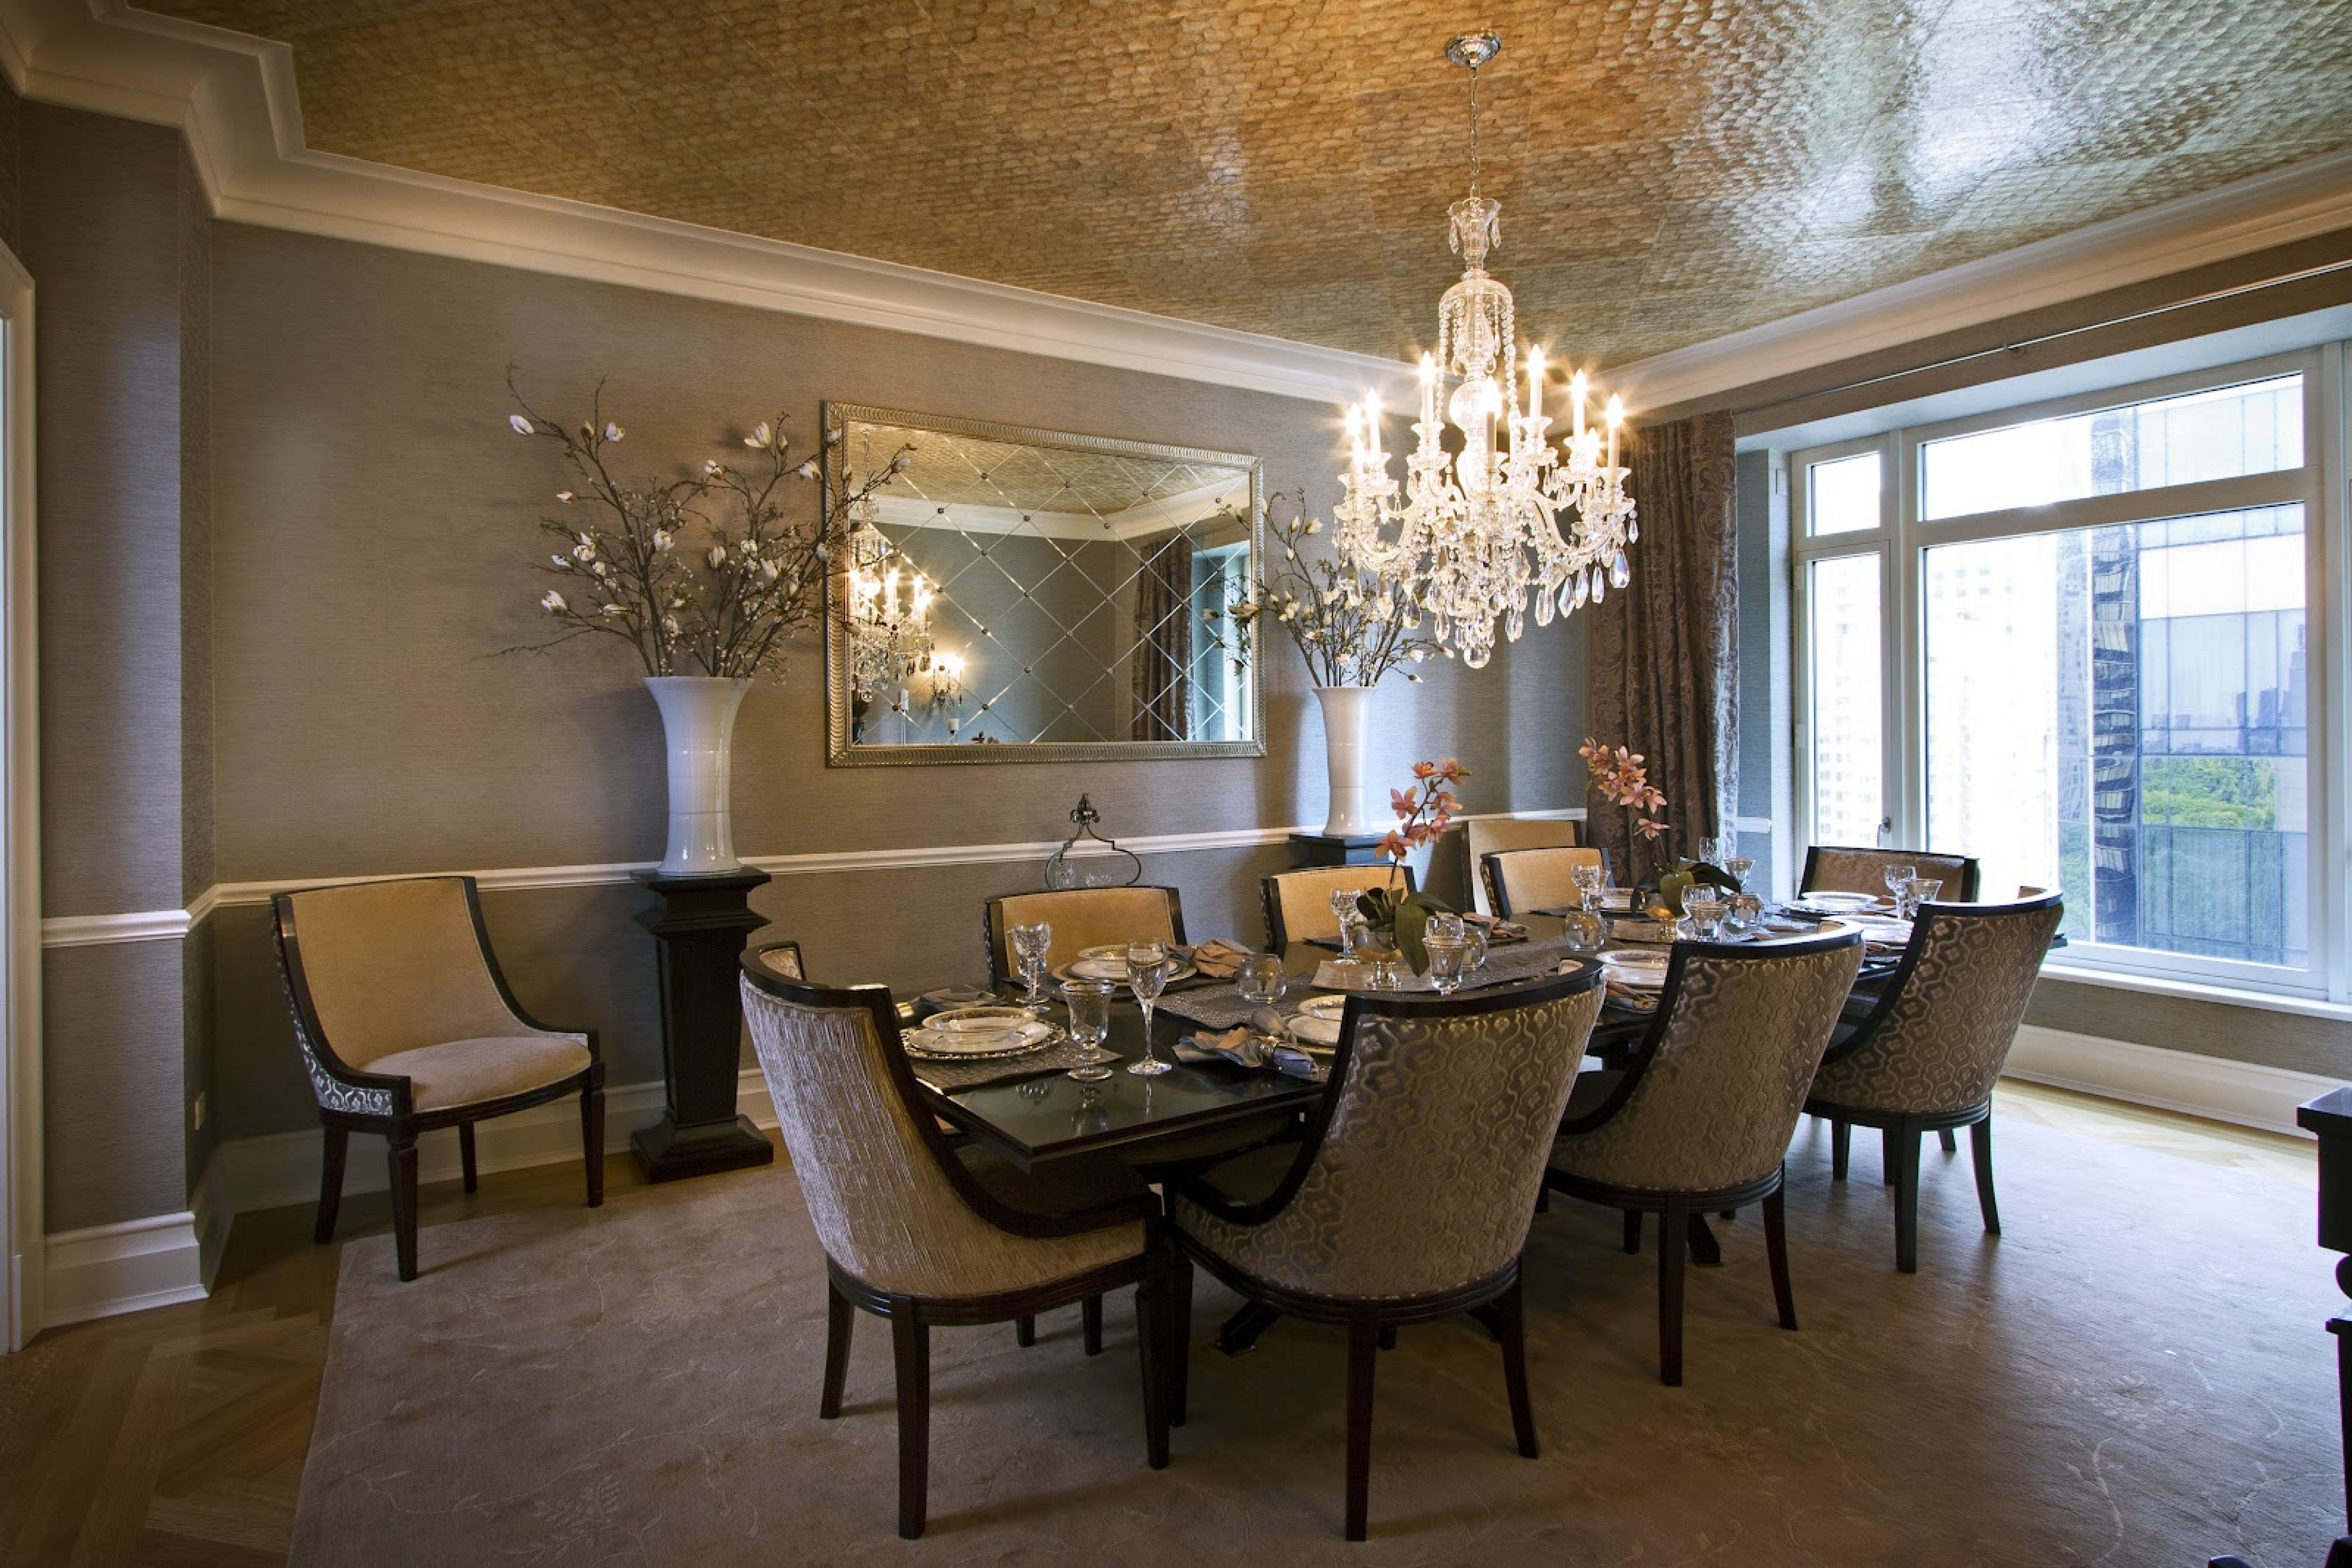 Superieur Houzz Dining Room Tables   What Is The Best Interior Paint Check More At  Http://mindlessapparel.com/houzz Dining Room Tables What Is The Best Interior Paint  ...